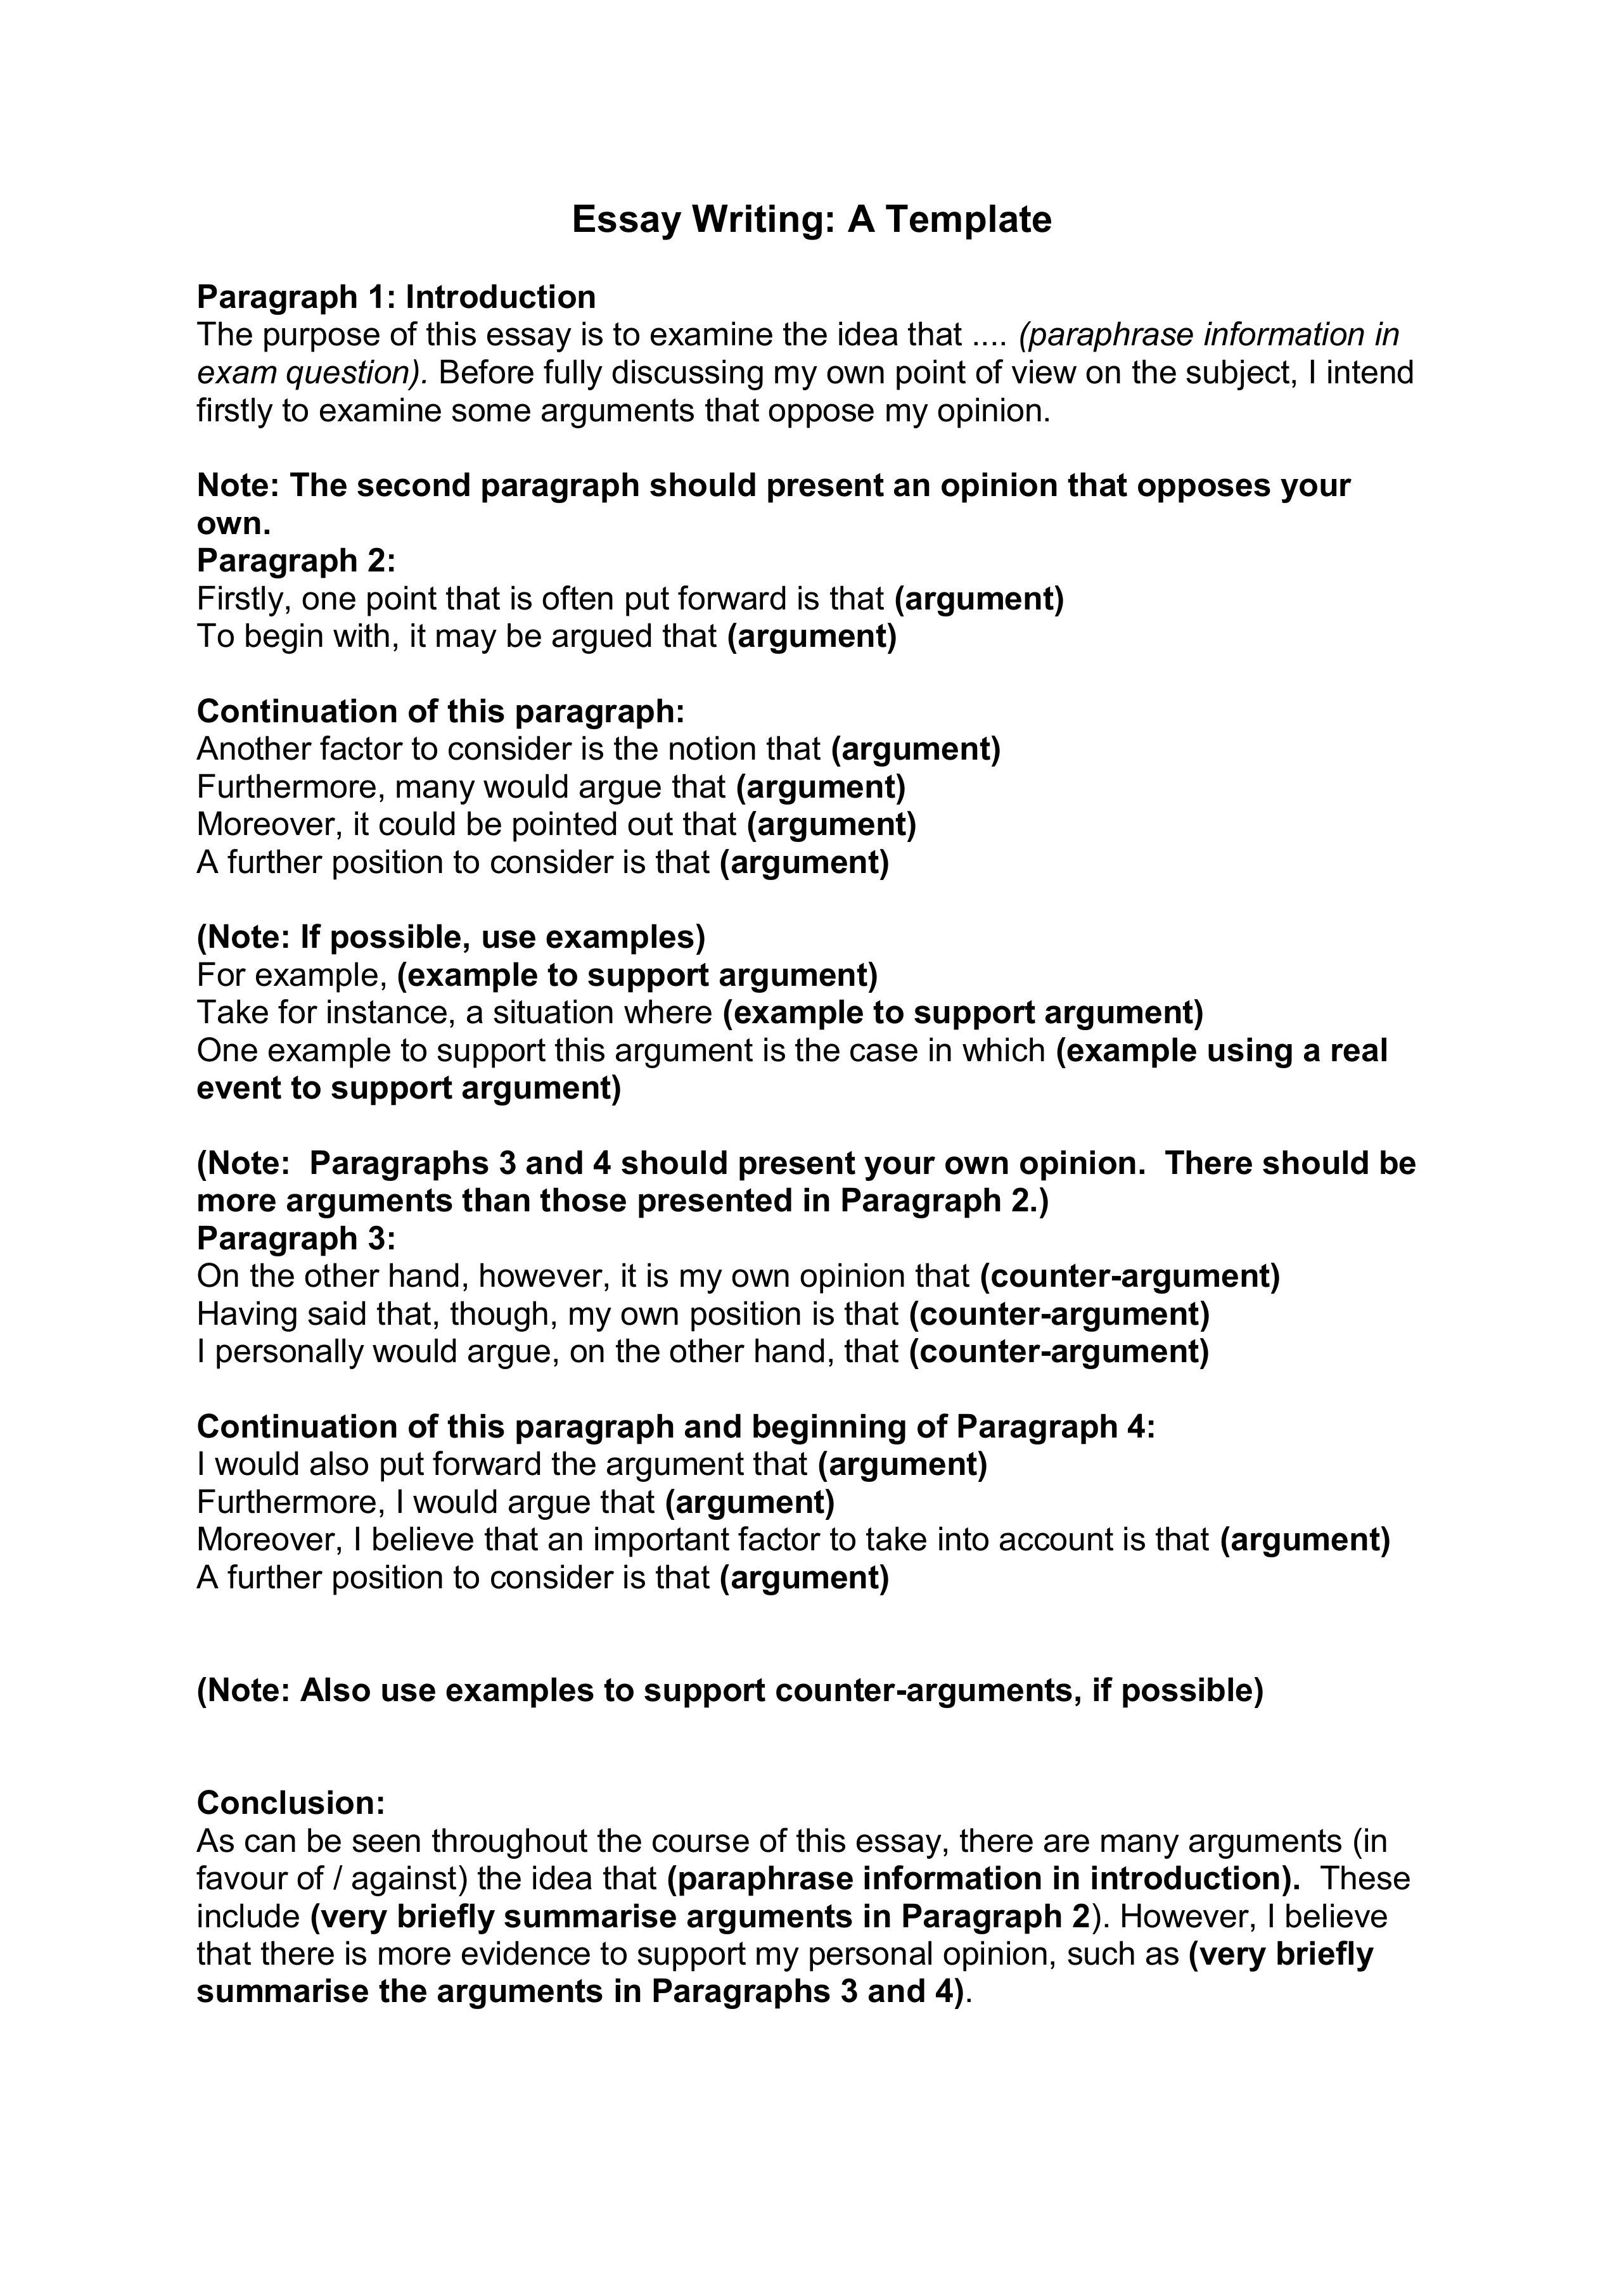 016 Image Essay Writing Homework Service Byassignmentdepa Good This I Believe Topics Template For P Sampless Stupendous Examples Personal College Full